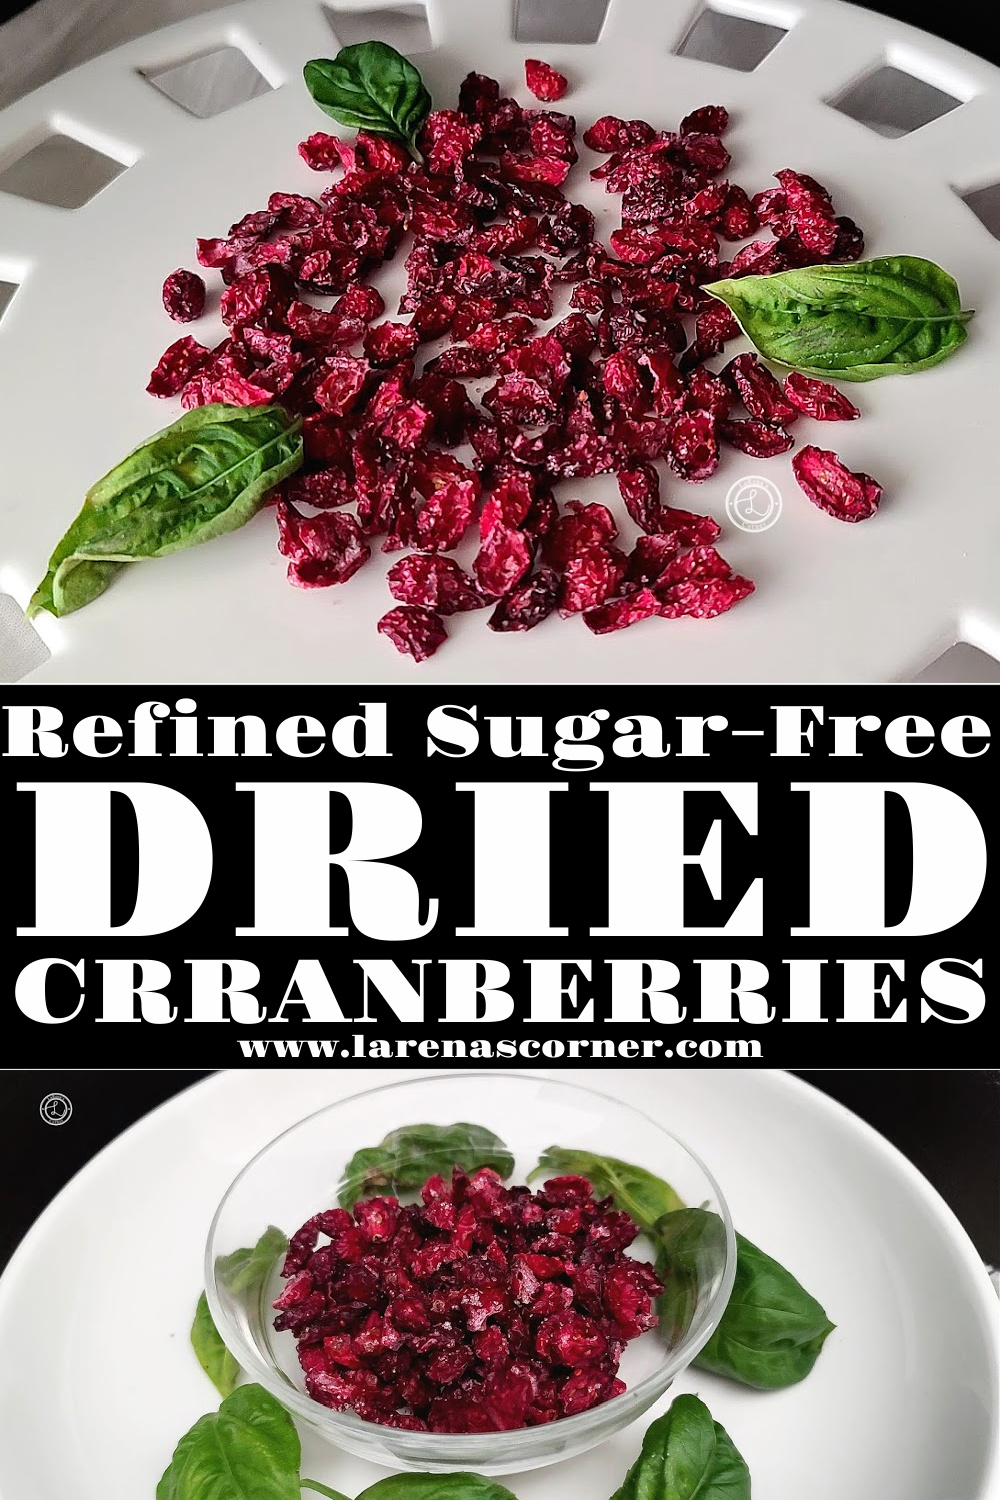 Two pictures of dried cranberries. One on a plate, the second in a bowl.